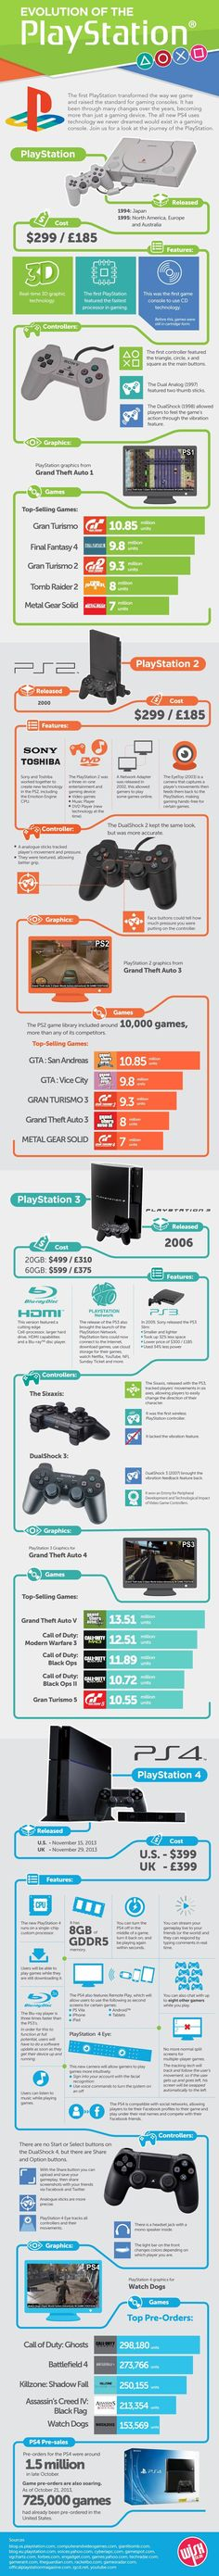 Evolution of the PlayStation Evolution of #PlayStation | #Infographic